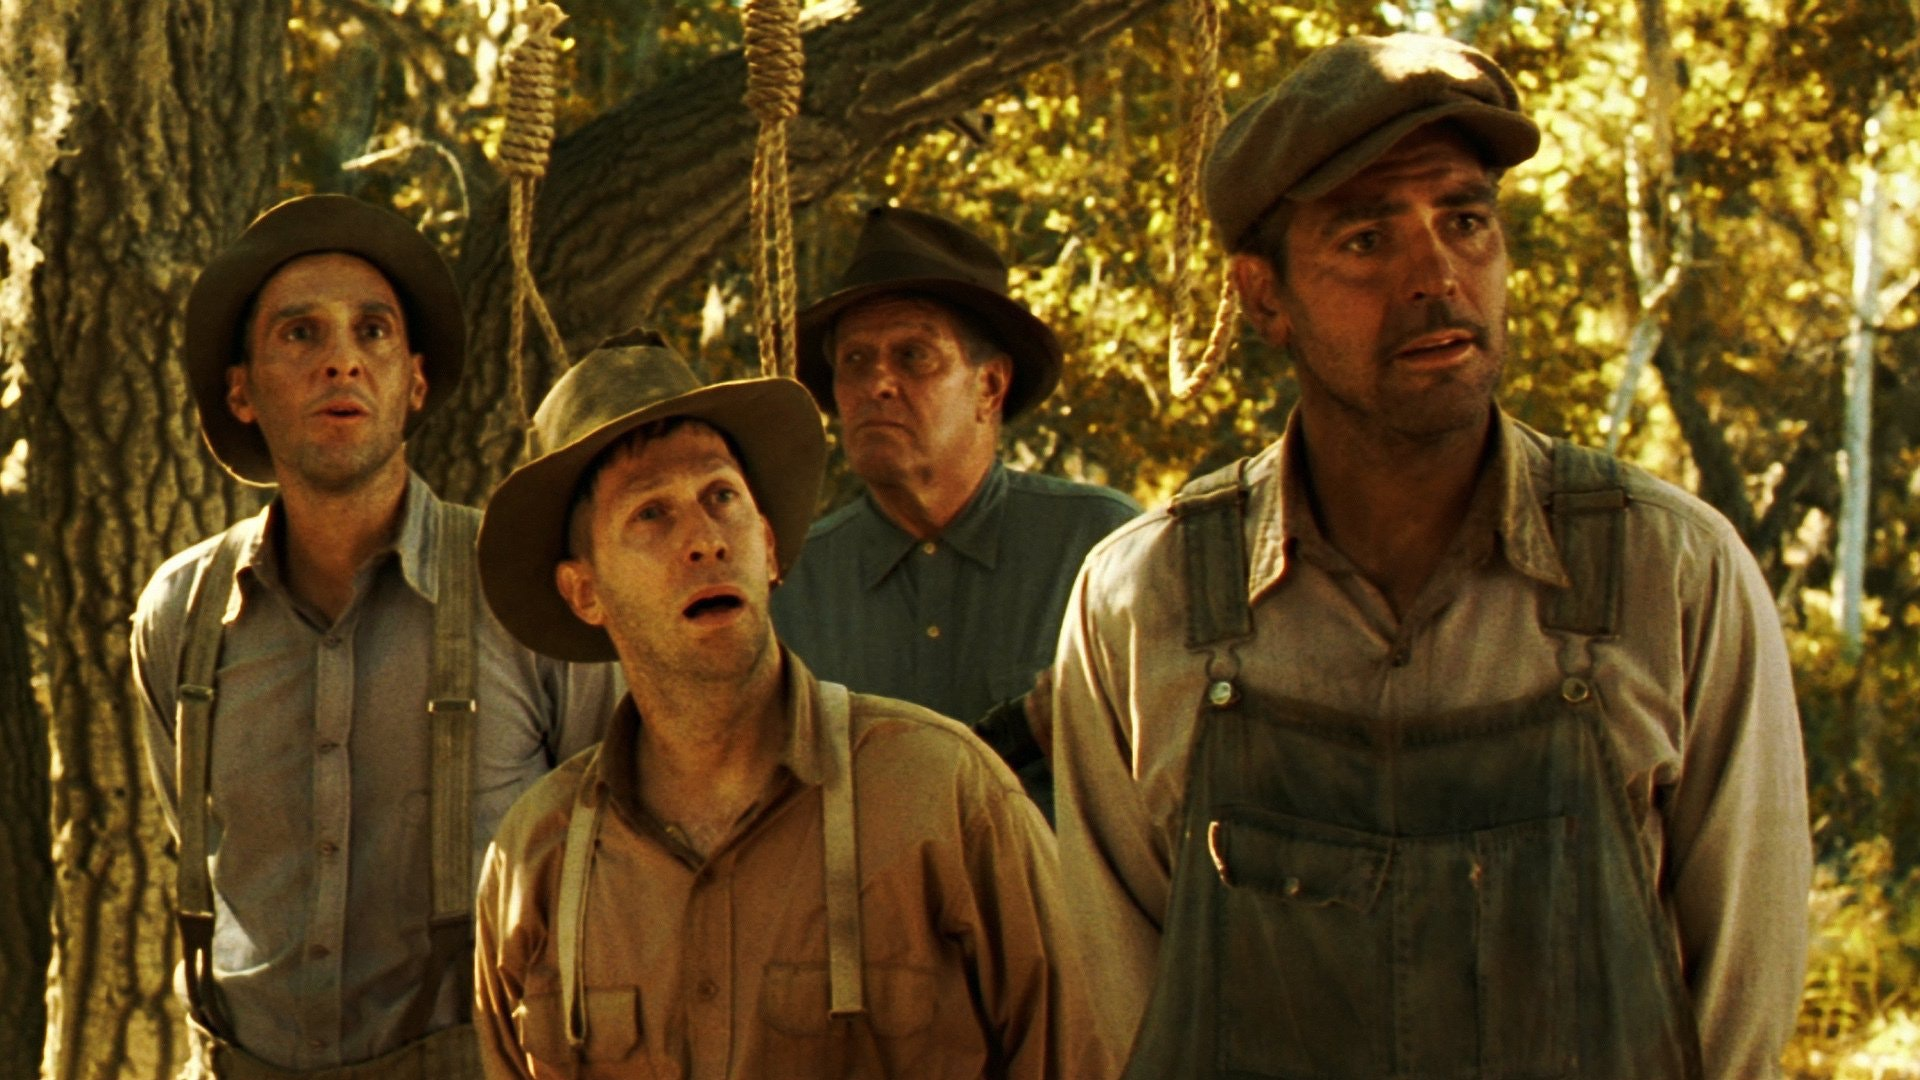 o brother where art thou vs the Though o' brother, where art thou is not and exact reincarnation of the original masterpiece, there are still ashow more content the strongest parallel that jumps out between the two stories is the events with the cyclopes.